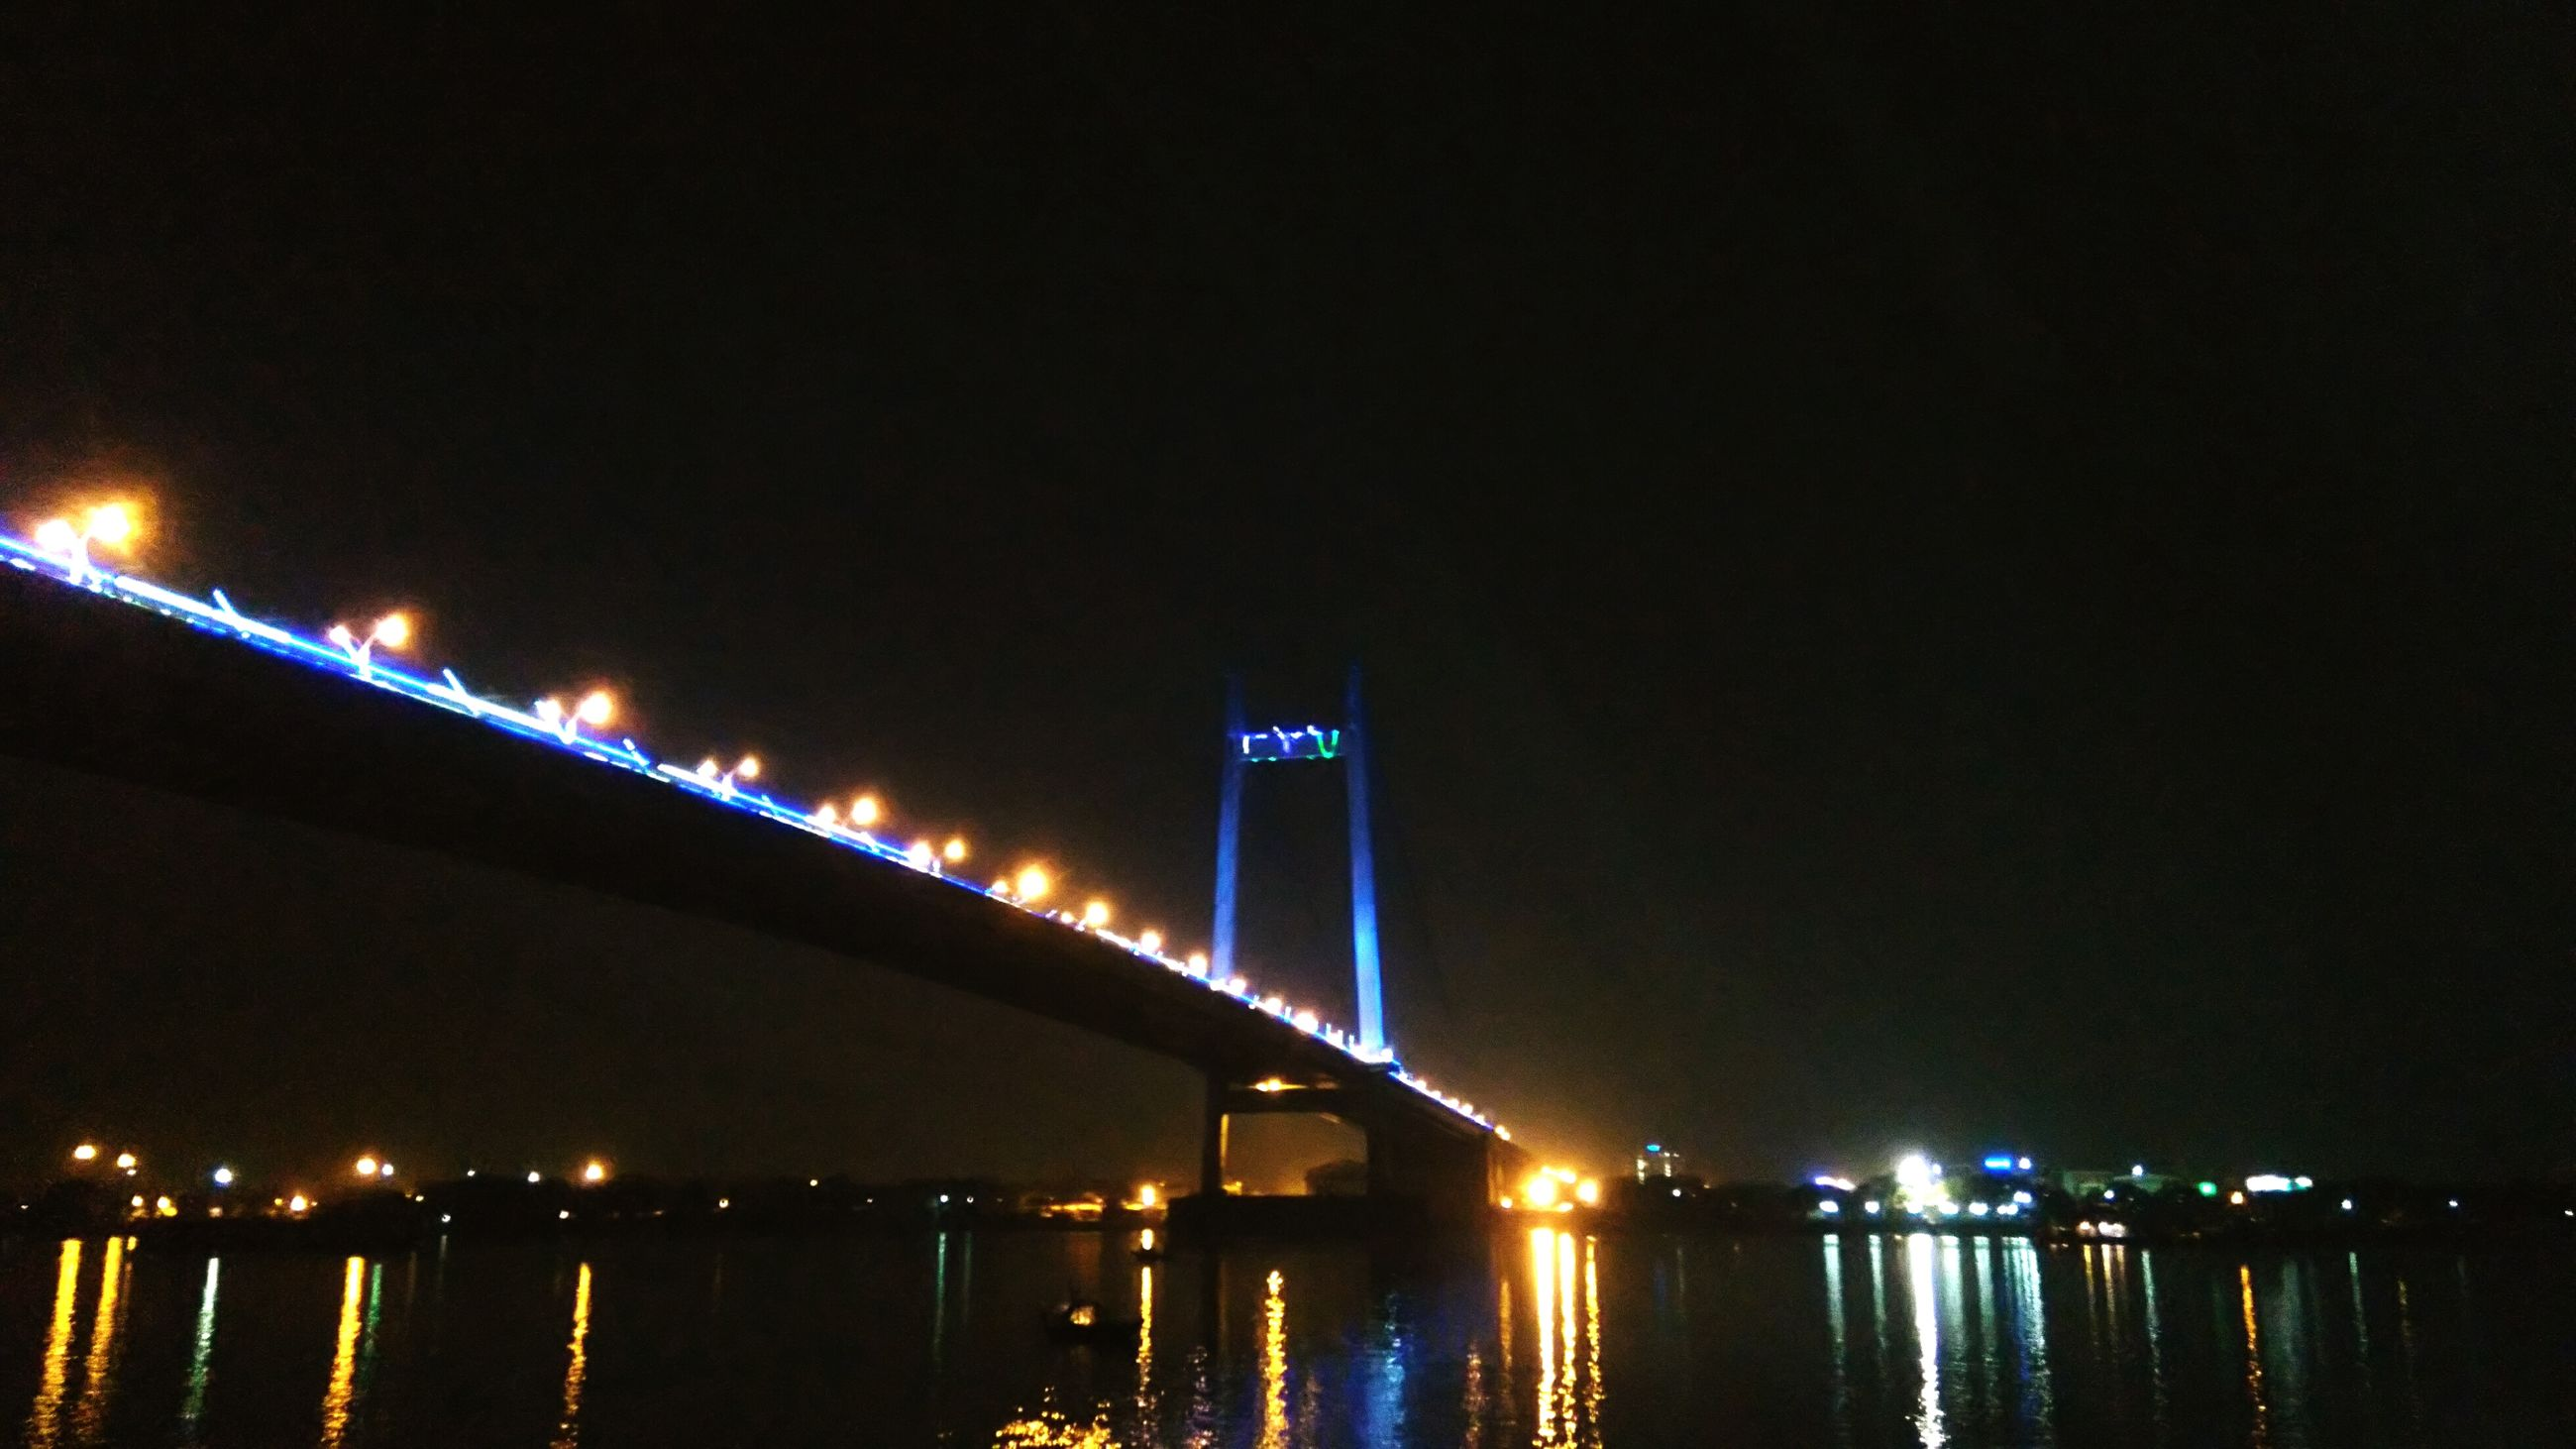 illuminated, night, water, connection, architecture, built structure, bridge - man made structure, waterfront, river, city, reflection, suspension bridge, sea, engineering, sky, bridge, light, copy space, transportation, building exterior